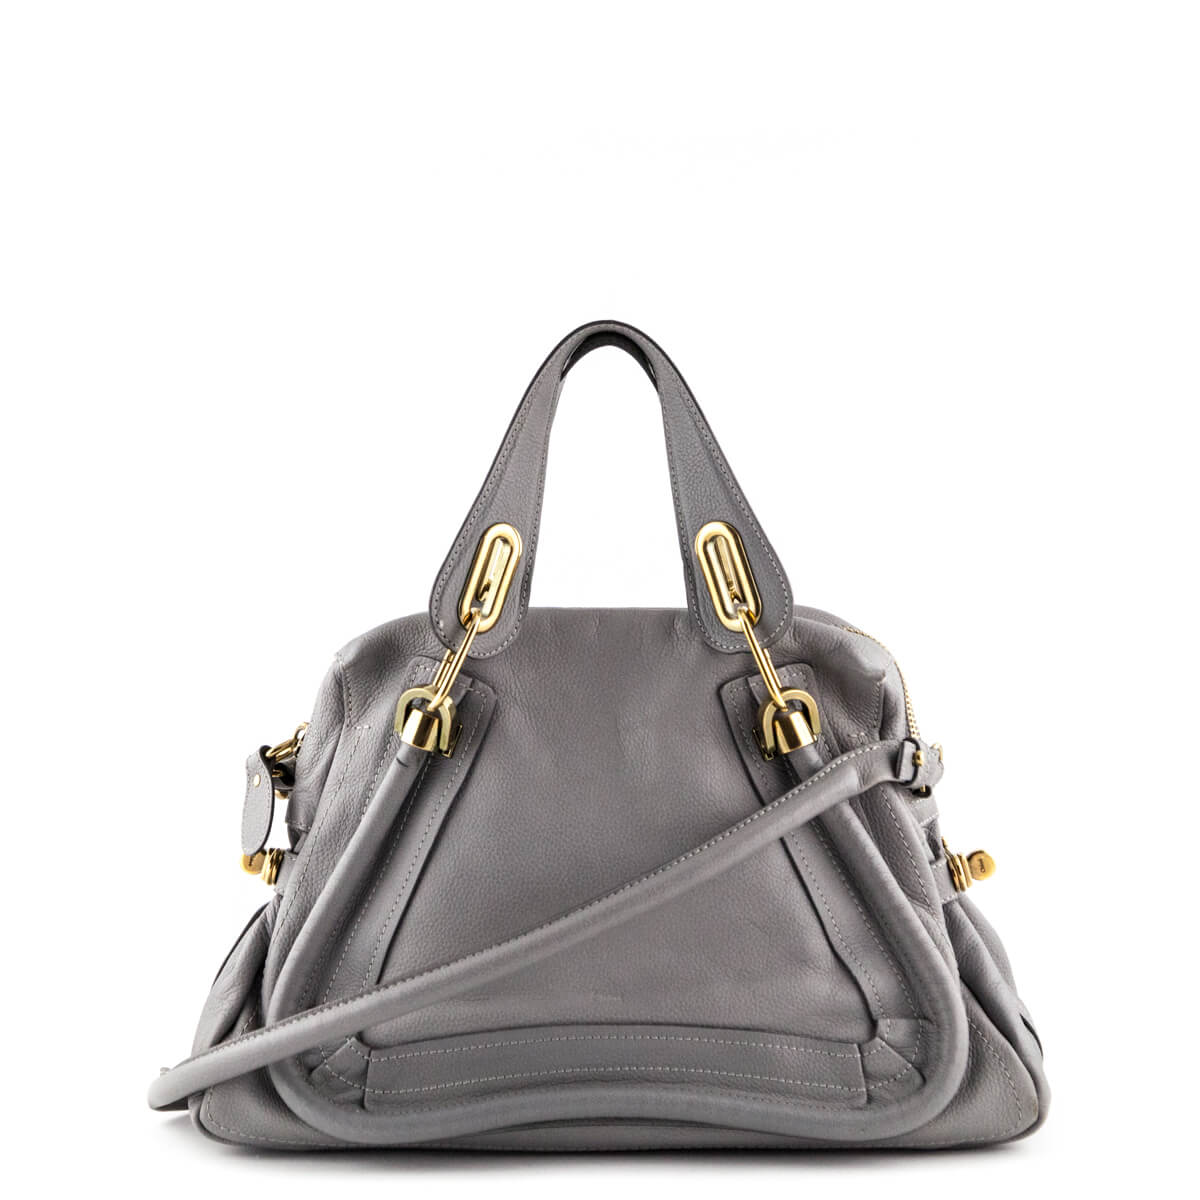 af4f4462d408 Chloe Gray Medium Paraty Shopper Tote - LOVE that BAG - Preowned Authentic  Designer Handbags ...